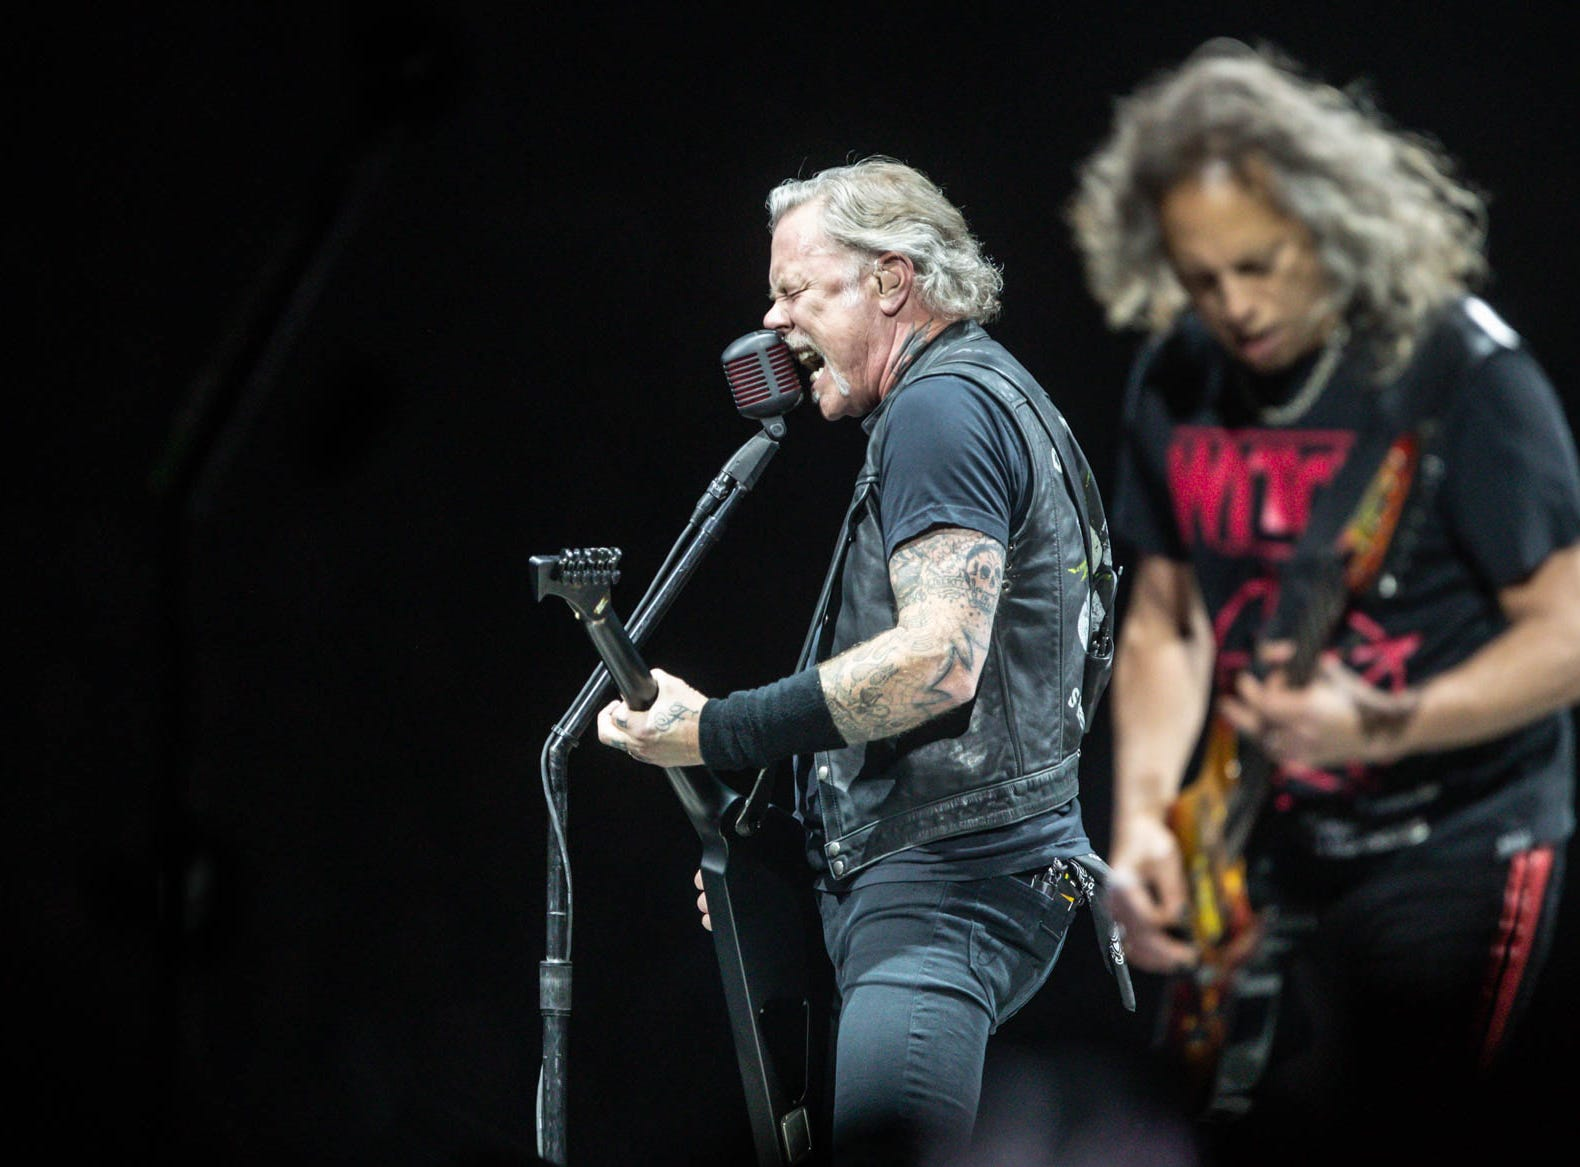 Metallica members James Hetfield, left, and Kirk Hammett perform as the band brings their WorldWired Tour to Bankers Life Fieldhouse on Monday, March 11, 2019.